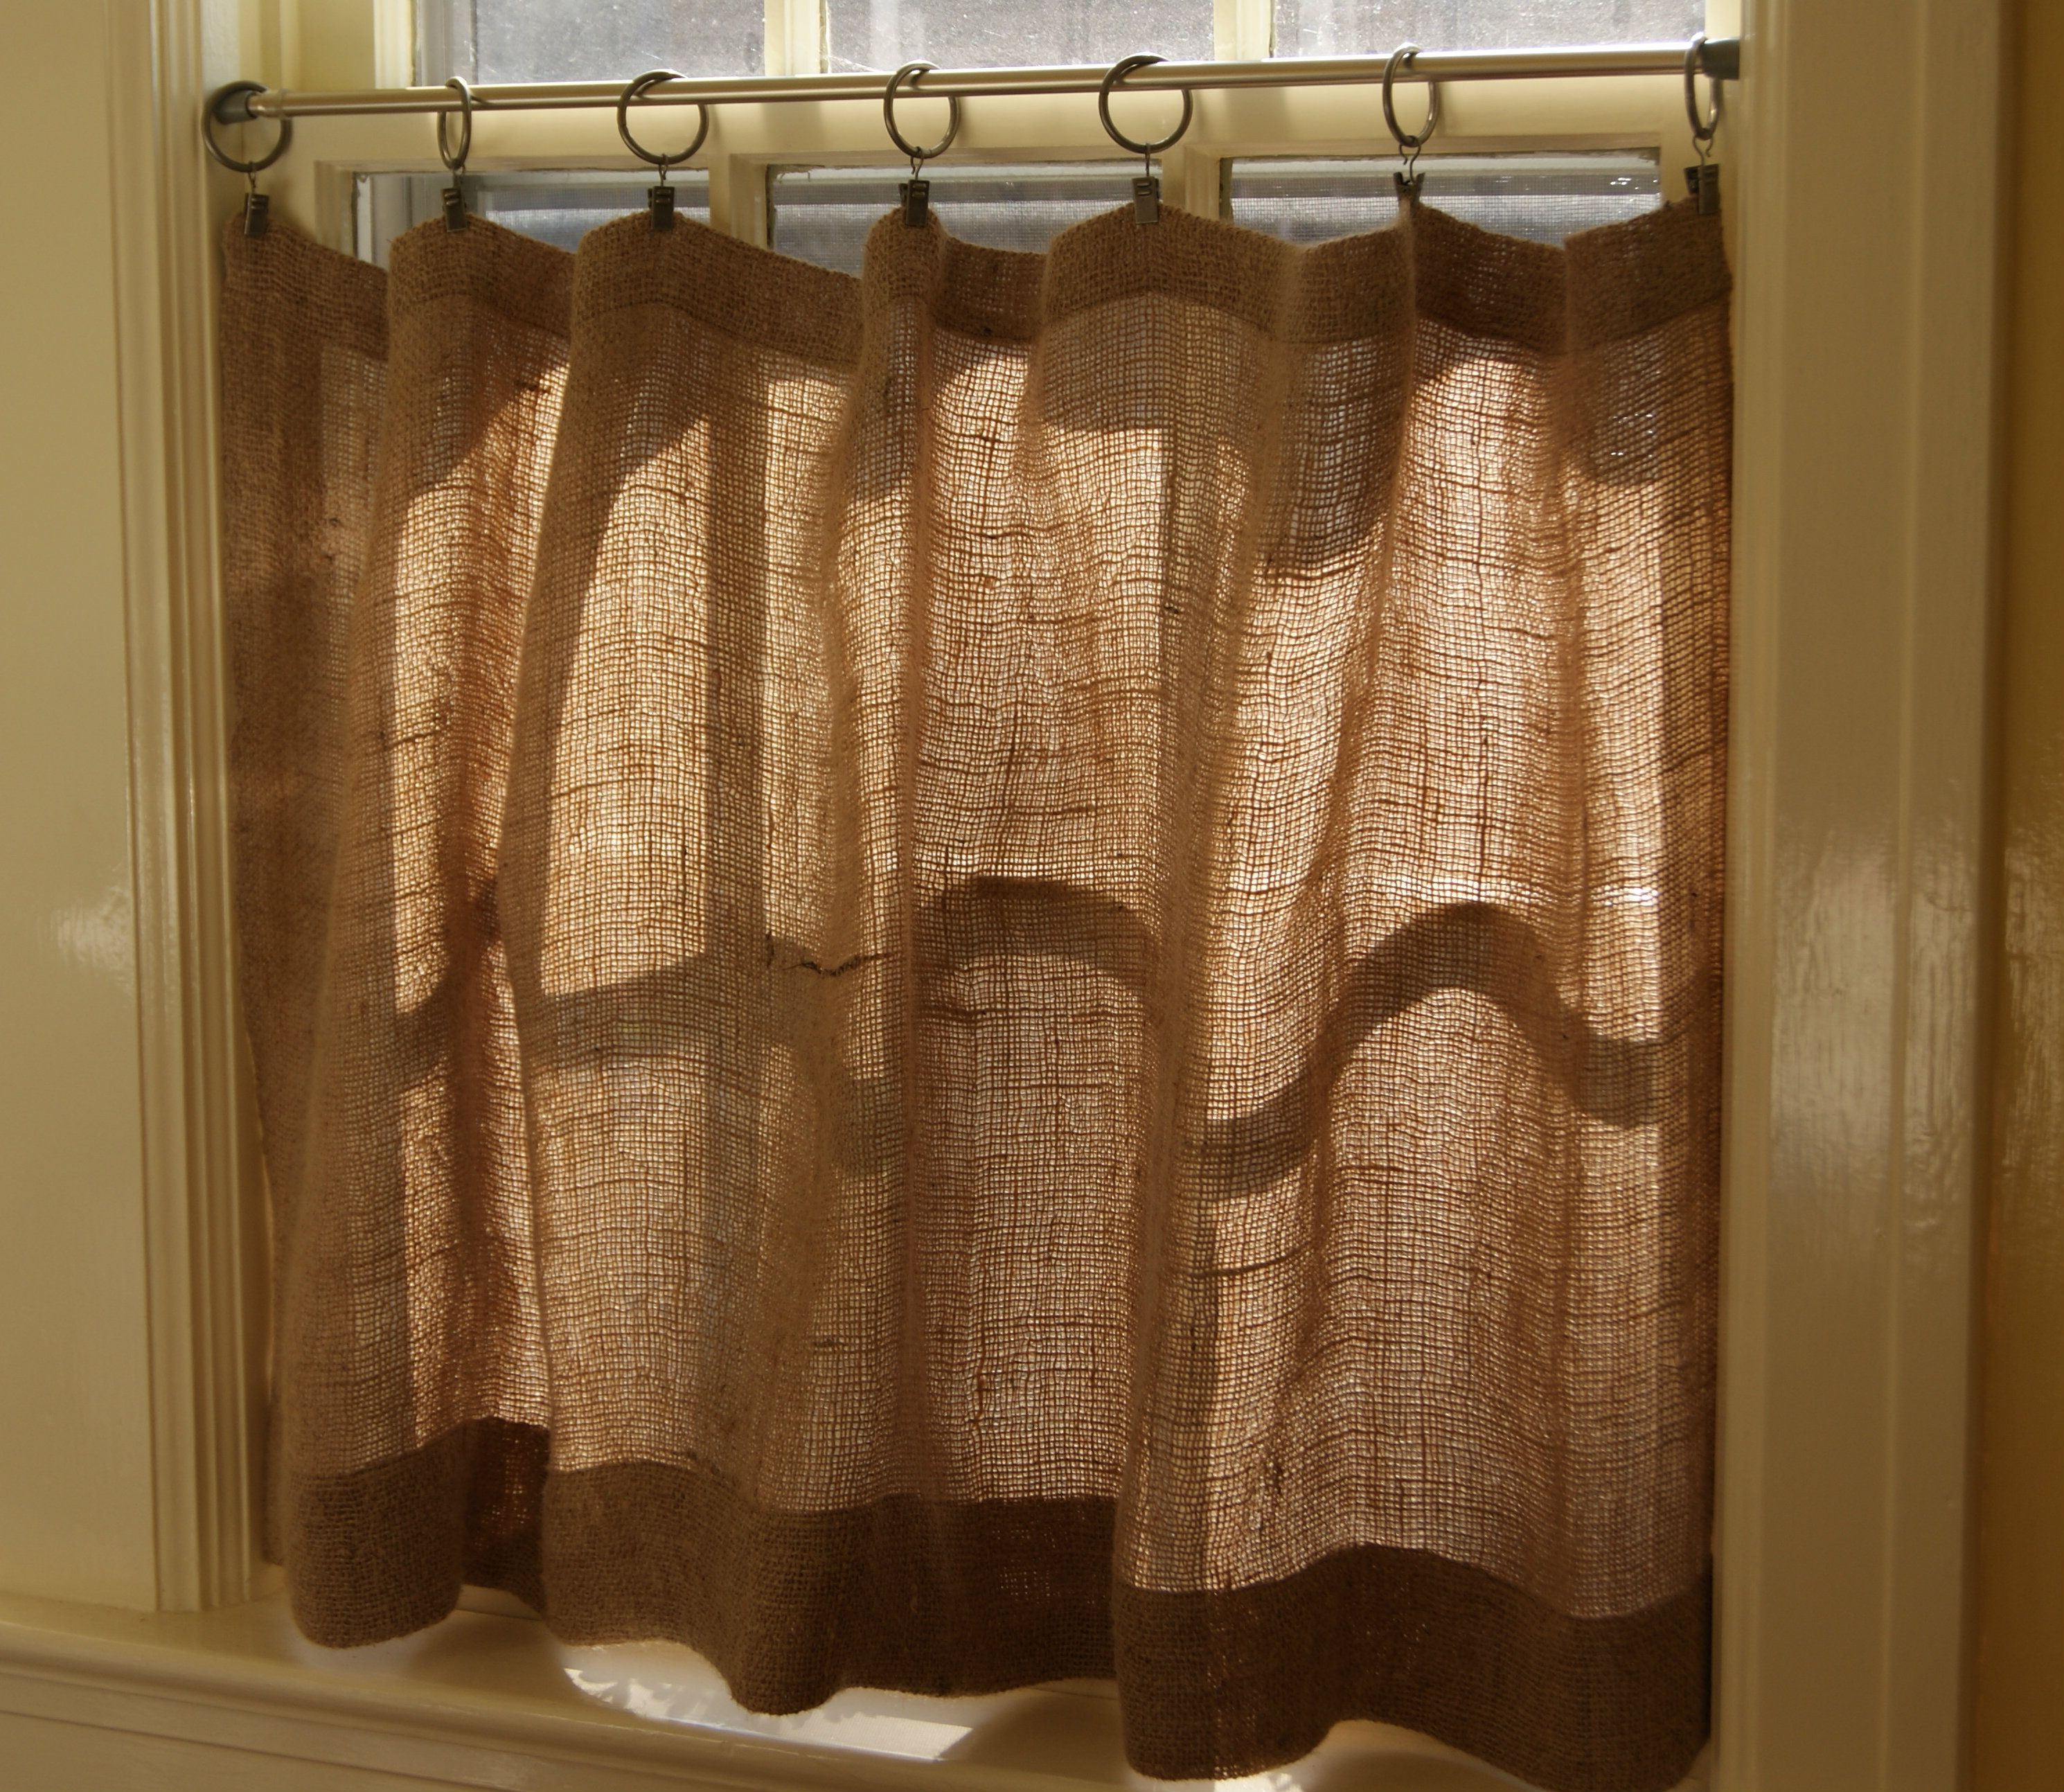 Cafe curtains for bathroom - Aloe Vera Face Cream Burlap Kitchen Curtainsbathroom Window Curtainscafe